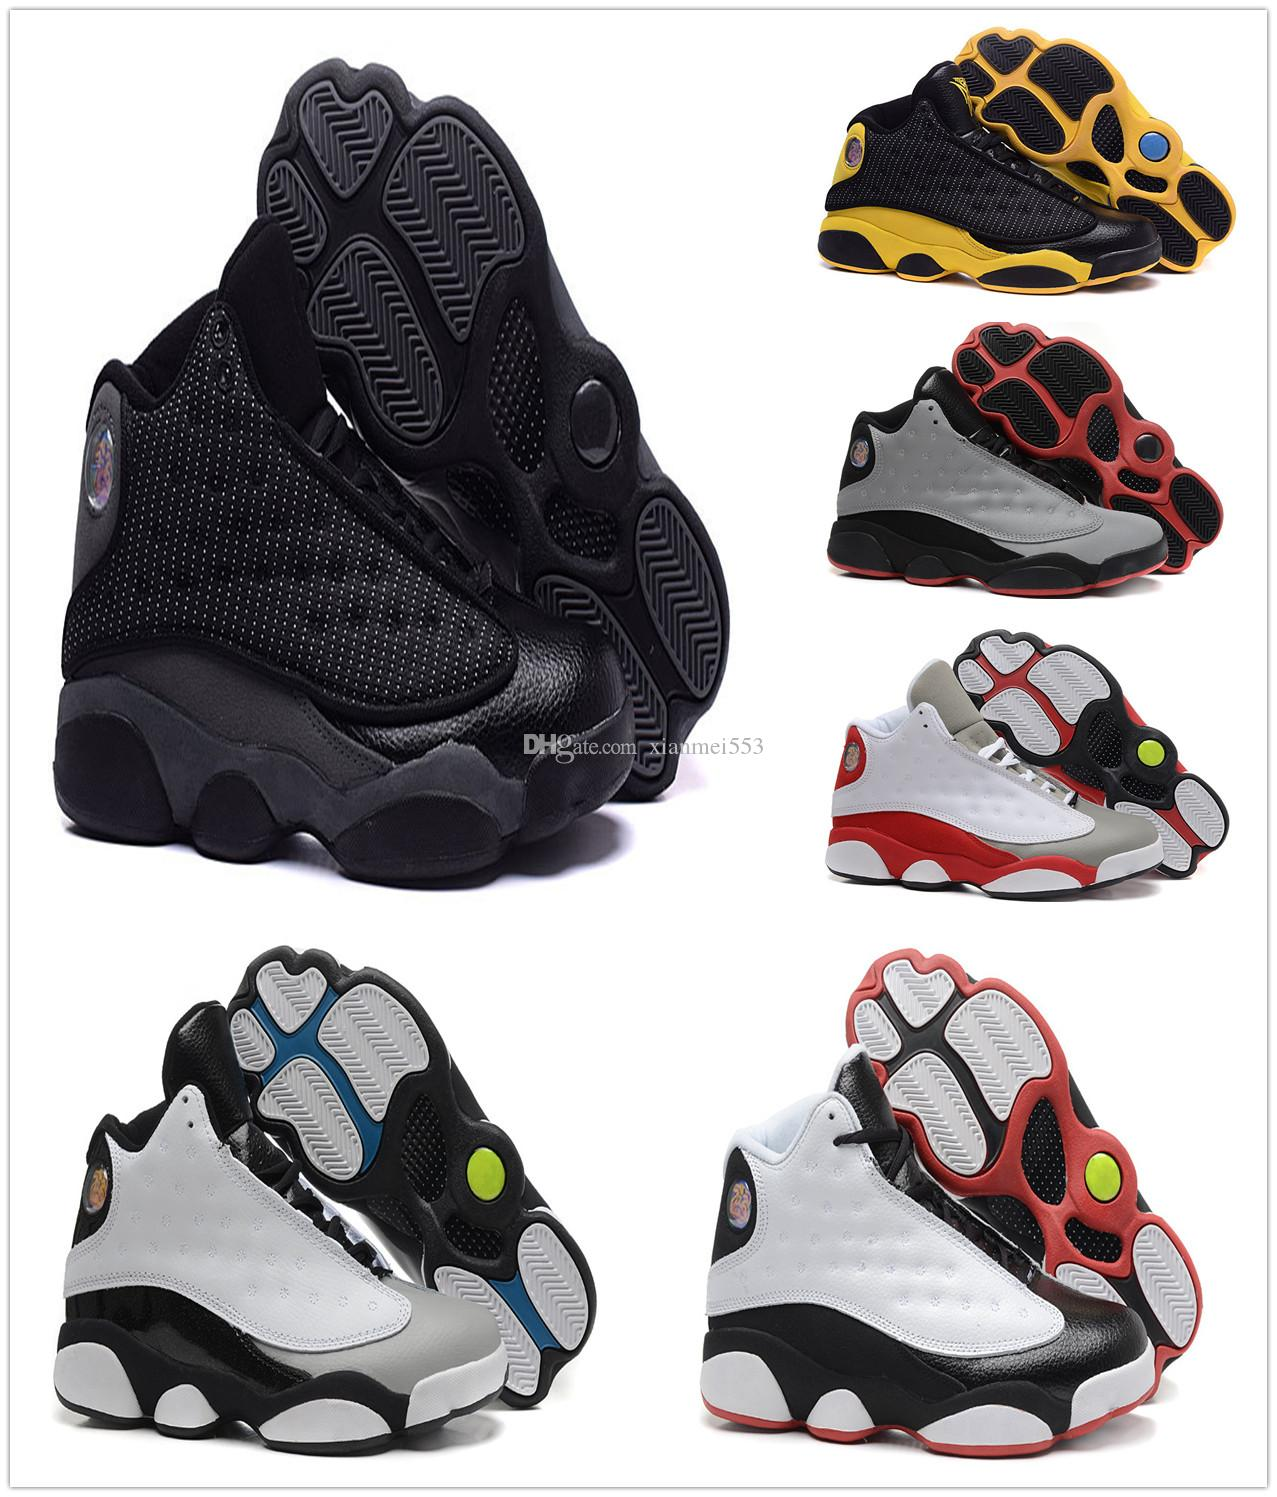 finishline really cheap wholesale 2018 New 13 men shoes bred flints grey toe He Got Game hologram barons casual fashion shoesr eur 41-47 sale limited edition discount professional CKJBXfE